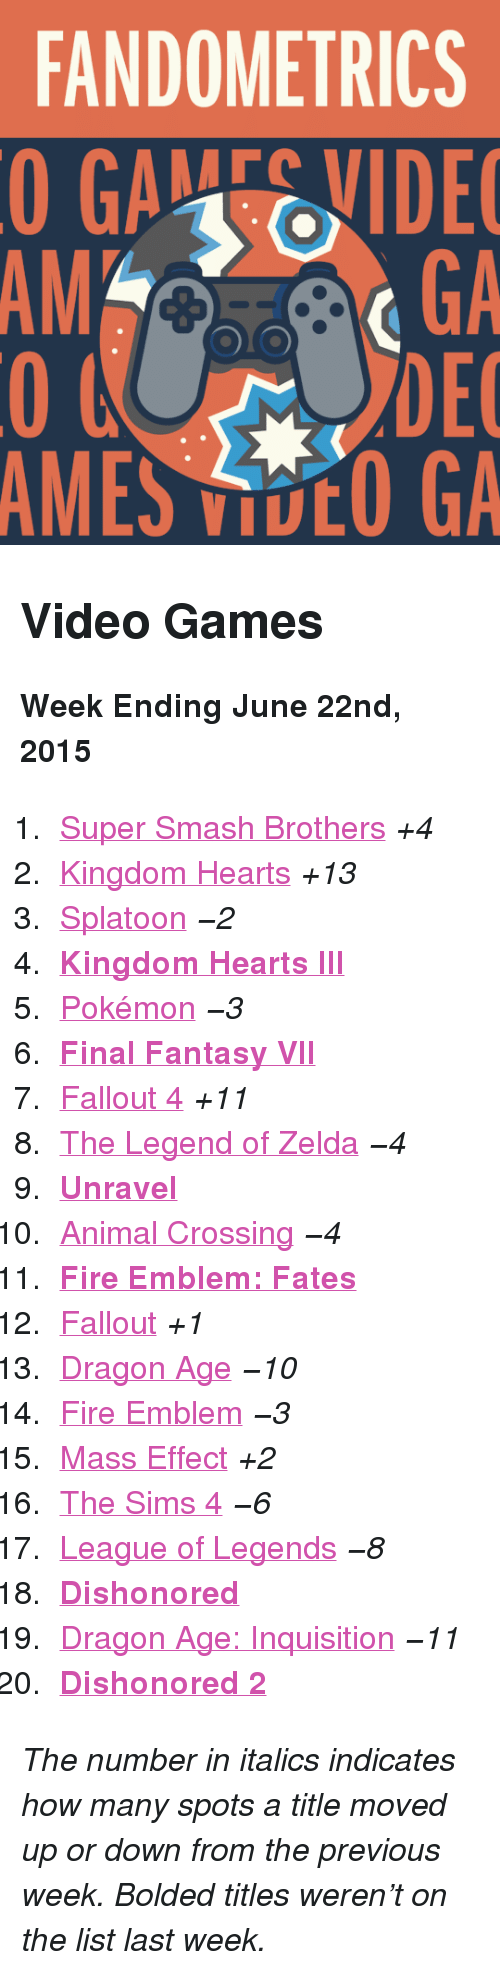 "kh3: FANDOMETRICS  GAEVIDE  GA  DEC  AMES VOO GA  AM <h2>Video Games</h2><p><b>Week Ending June 22nd, 2015</b></p><ol><li><a href=""http://www.tumblr.com/search/super%20smash%20bros"">Super Smash Brothers</a> <i>+4</i></li>  <li><a href=""http://www.tumblr.com/search/kingdom%20hearts"">Kingdom Hearts</a> <i>+13</i></li>  <li><a href=""http://www.tumblr.com/search/splatoon"">Splatoon</a> <i>−2</i></li>  <li><a href=""http://www.tumblr.com/search/kh3""><b>Kingdom Hearts III</b></a></li>  <li><a href=""http://www.tumblr.com/search/pokemon"">Pokémon</a> <i>−3</i></li>  <li><a href=""http://www.tumblr.com/search/final%20fantasy%20vii""><b>Final Fantasy VII</b></a></li>  <li><a href=""http://www.tumblr.com/search/fallout%204"">Fallout 4</a> <i>+11</i></li>  <li><a href=""http://www.tumblr.com/search/legend%20of%20zelda"">The Legend of Zelda</a> <i>−4</i></li>  <li><a href=""http://www.tumblr.com/search/unravel""><b>Unravel</b></a></li>  <li><a href=""http://www.tumblr.com/search/acnl"">Animal Crossing</a> <i>−4</i></li>  <li><a href=""http://www.tumblr.com/search/fire%20emblem%20fates""><b>Fire Emblem: Fates</b></a></li>  <li><a href=""http://www.tumblr.com/search/fallout"">Fallout</a> <i>+1</i></li>  <li><a href=""http://www.tumblr.com/search/dragon%20age"">Dragon Age</a> <i>−10</i></li>  <li><a href=""http://www.tumblr.com/search/fire%20emblem"">Fire Emblem</a> <i>−3</i></li>  <li><a href=""http://www.tumblr.com/search/mass%20effect"">Mass Effect</a> <i>+2</i></li>  <li><a href=""http://www.tumblr.com/search/sims%204"">The Sims 4</a> <i>−6</i></li>  <li><a href=""http://www.tumblr.com/search/league%20of%20legends"">League of Legends</a> <i>−8</i></li>  <li><a href=""http://www.tumblr.com/search/dishonored""><b>Dishonored</b></a></li>  <li><a href=""http://www.tumblr.com/search/dragon%20age%20inquisition"">Dragon Age: Inquisition</a> <i>−11</i></li>  <li><a href=""http://www.tumblr.com/search/dishonored%202""><b>Dishonored 2</b></a></li></ol><p><i>The number in italics indicates how many spots a title moved up or down from the previous week. Bolded titles weren't on the list last week.</i></p>"